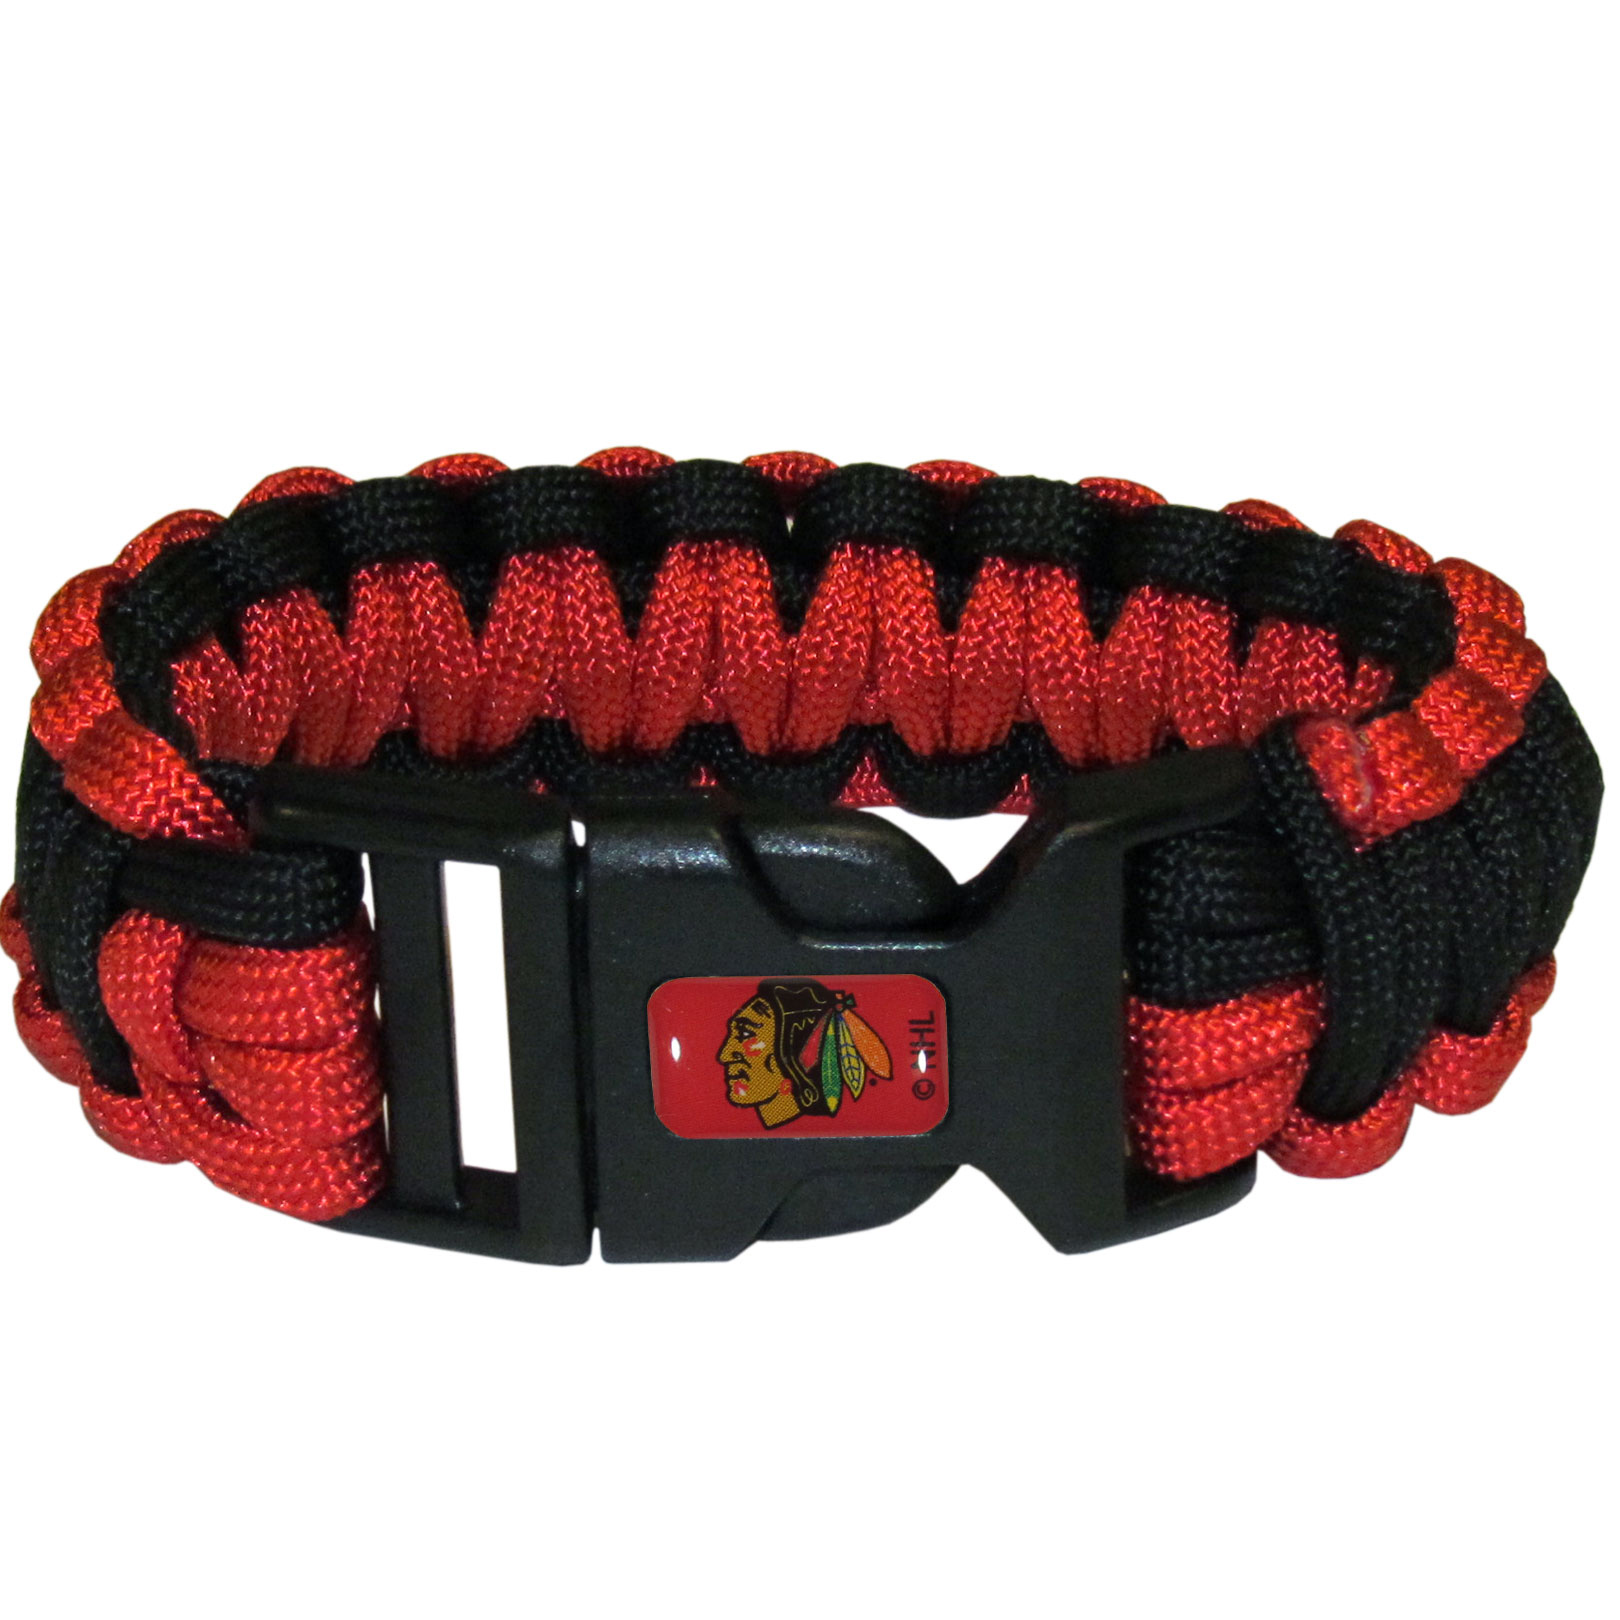 Chicago Blackhawks® Survivor Bracelet - Our functional and fashionable Chicago Blackhawks® survivor bracelets contain 2 individual 300lb test paracord rated cords that are each 5 feet long. The team colored cords can be pulled apart to be used in any number of emergencies and look great while worn. The bracelet features a team emblem on the clasp.